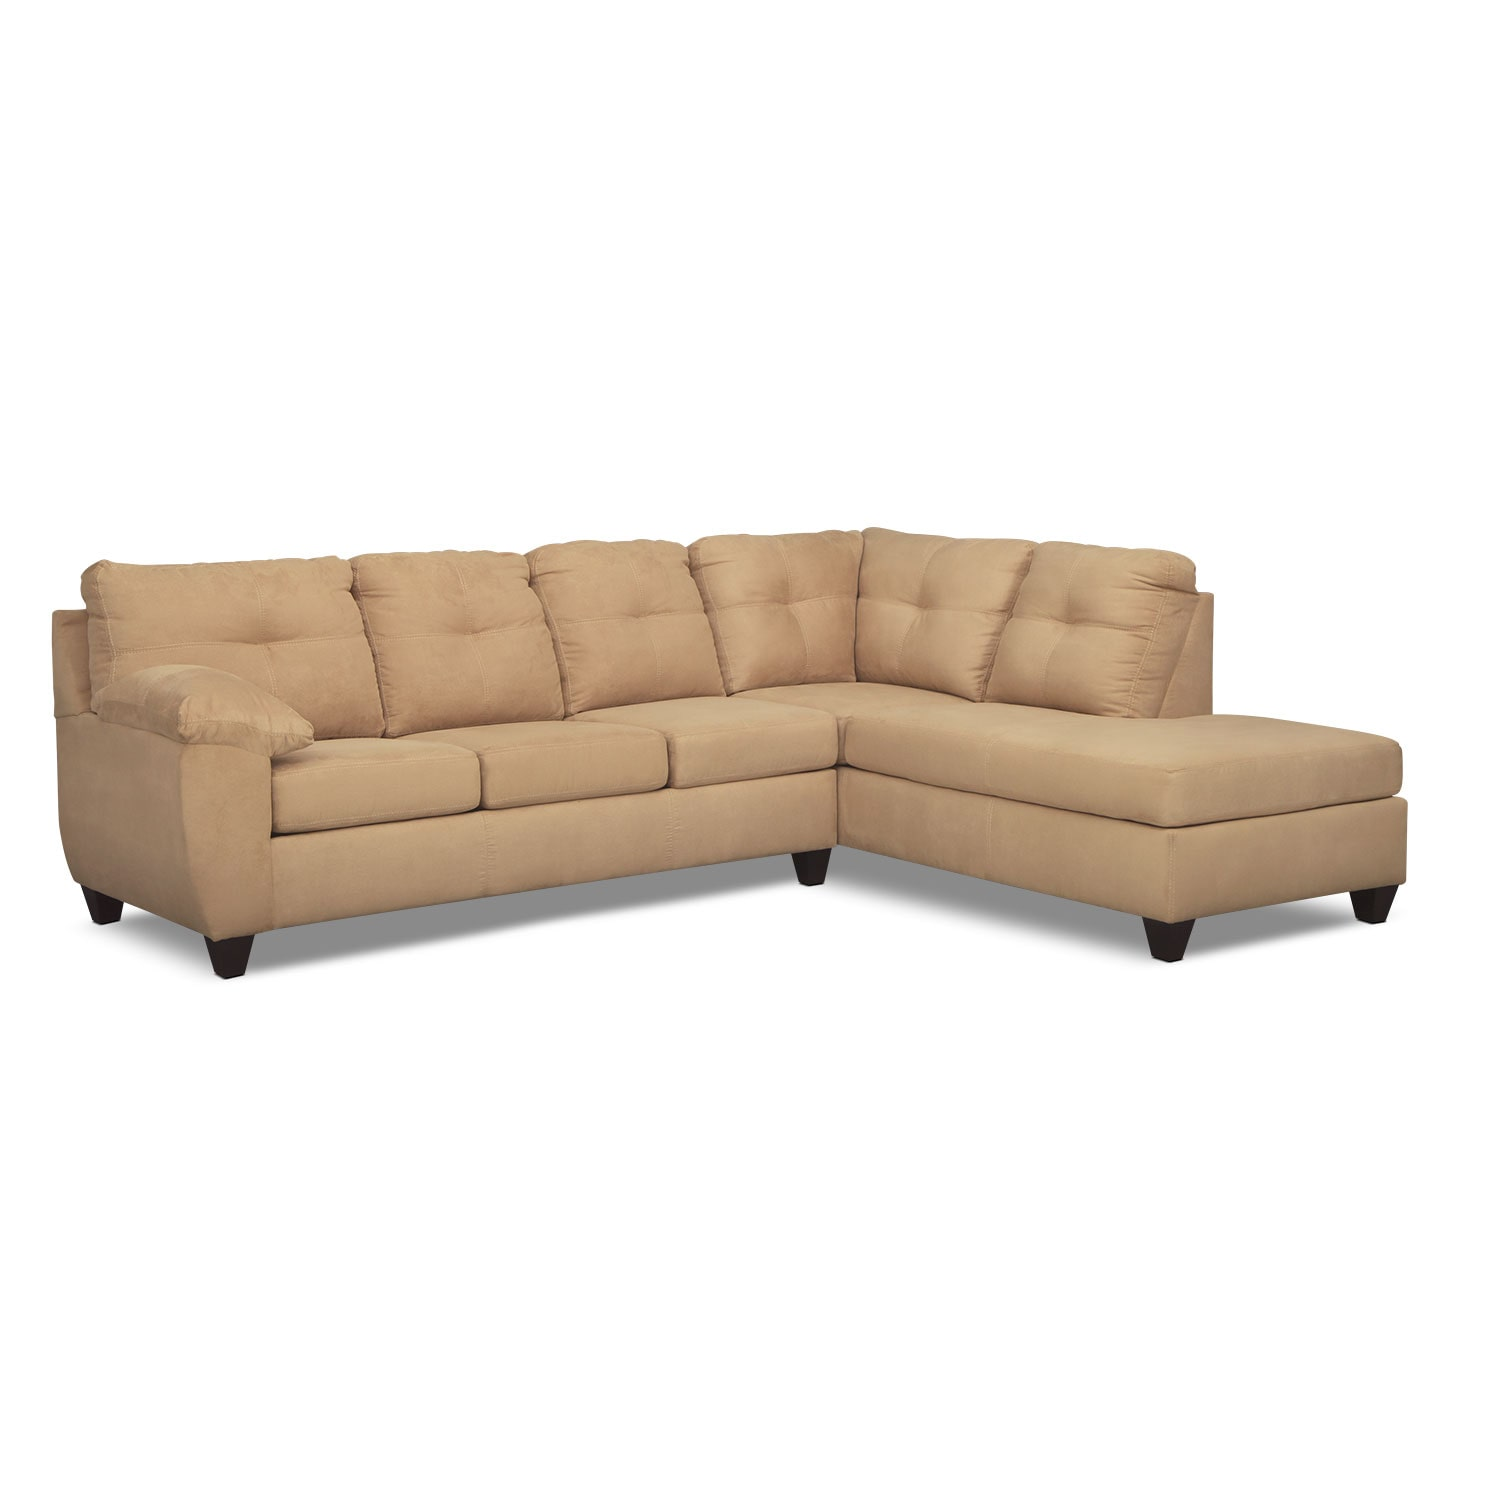 Rialto 2-Piece Sectional with Right-Facing Chaise - Camel